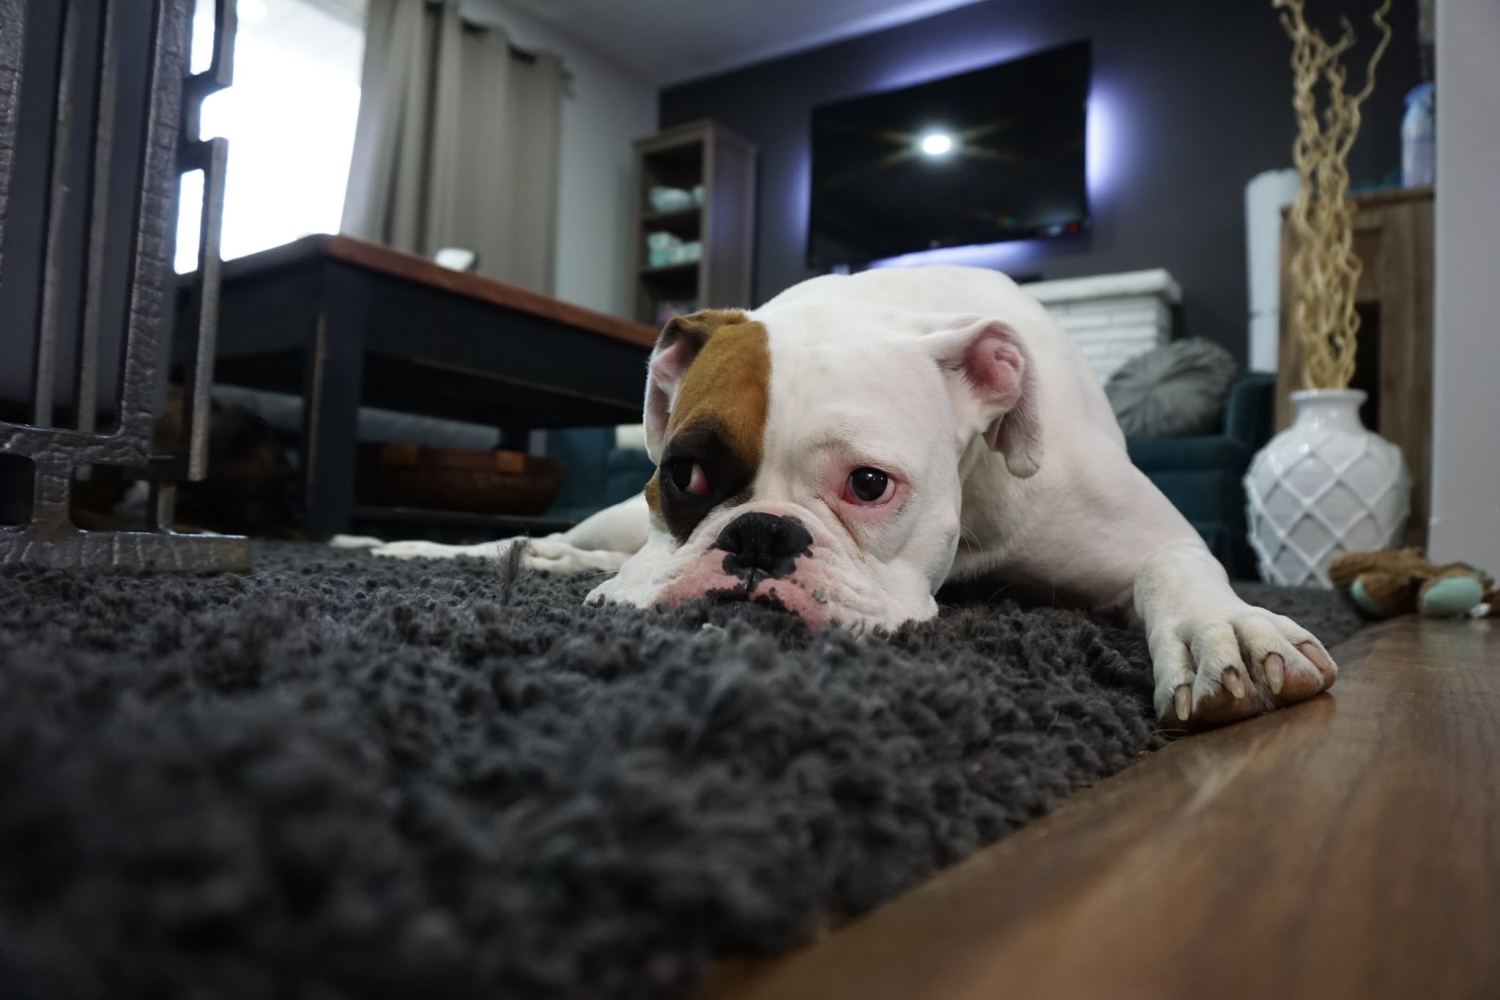 Family pet dog on dark gray shag area rug in nicely decorated living room.